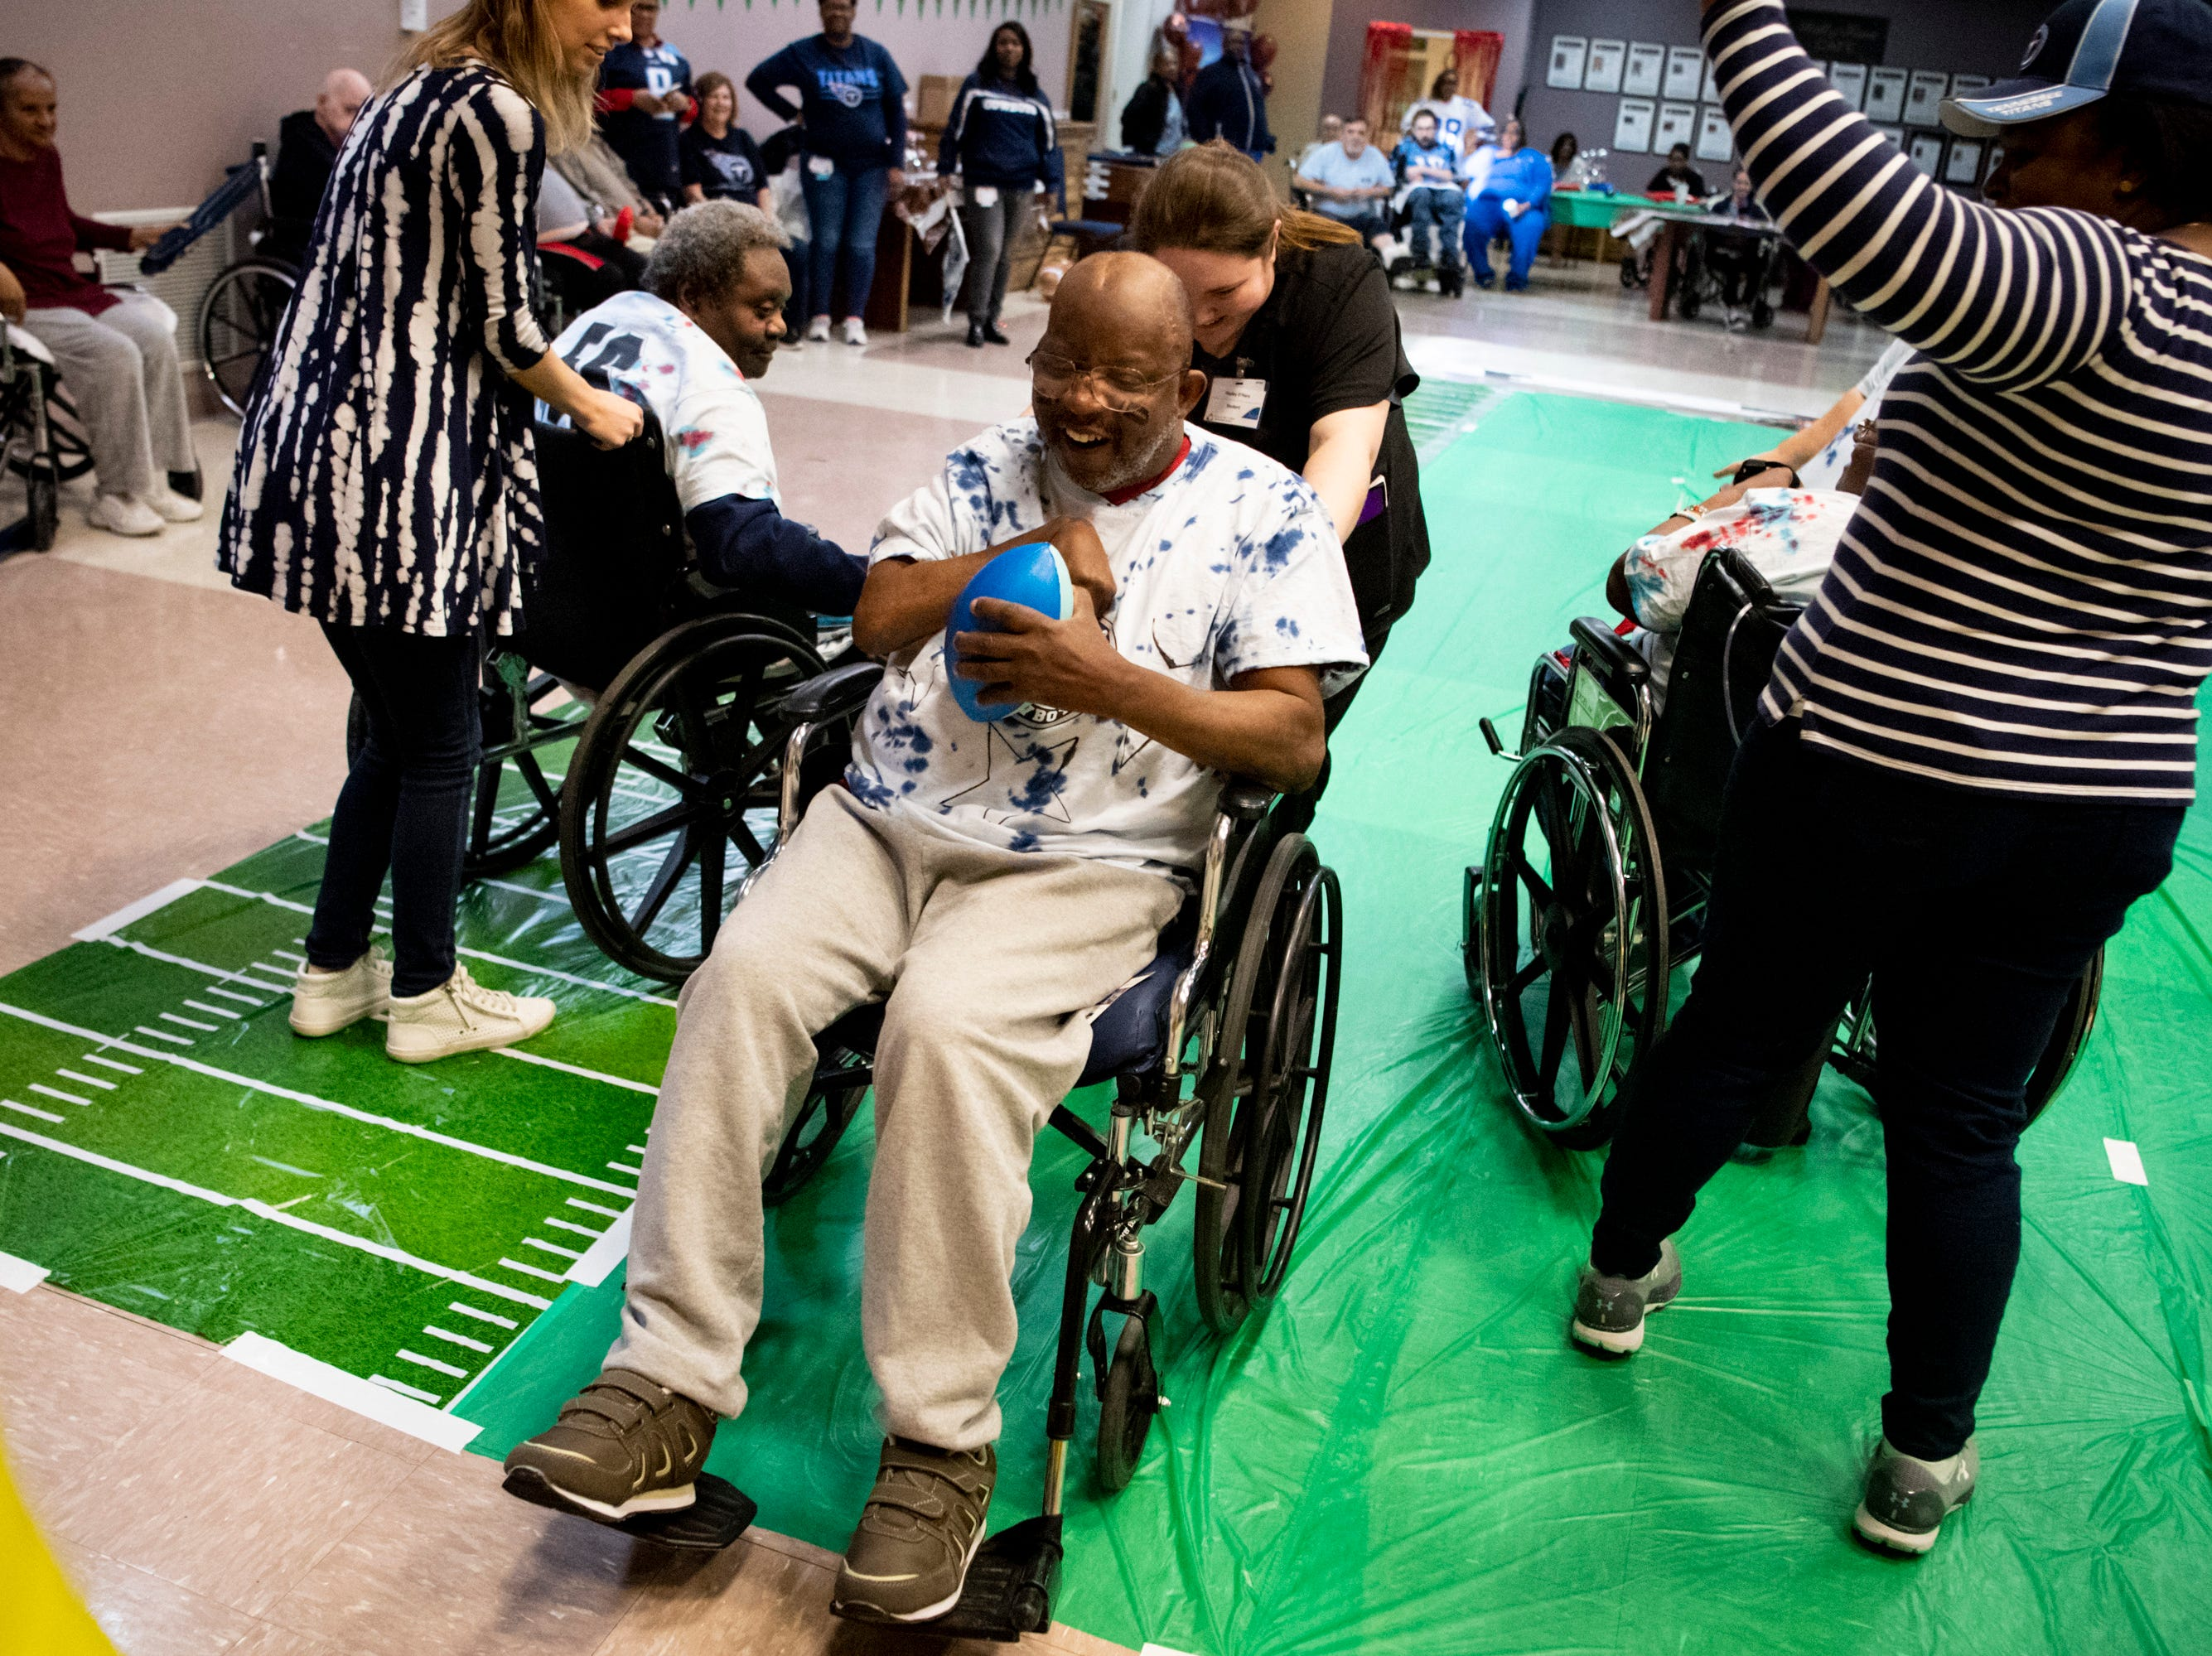 Robert Neil smiles as he approaches the end-zone during the Wheelchair Super Bowl at Nashville Community Care and Rehabilitation at Bordeaux in Nashville, Tenn., Friday, Feb. 1, 2019.